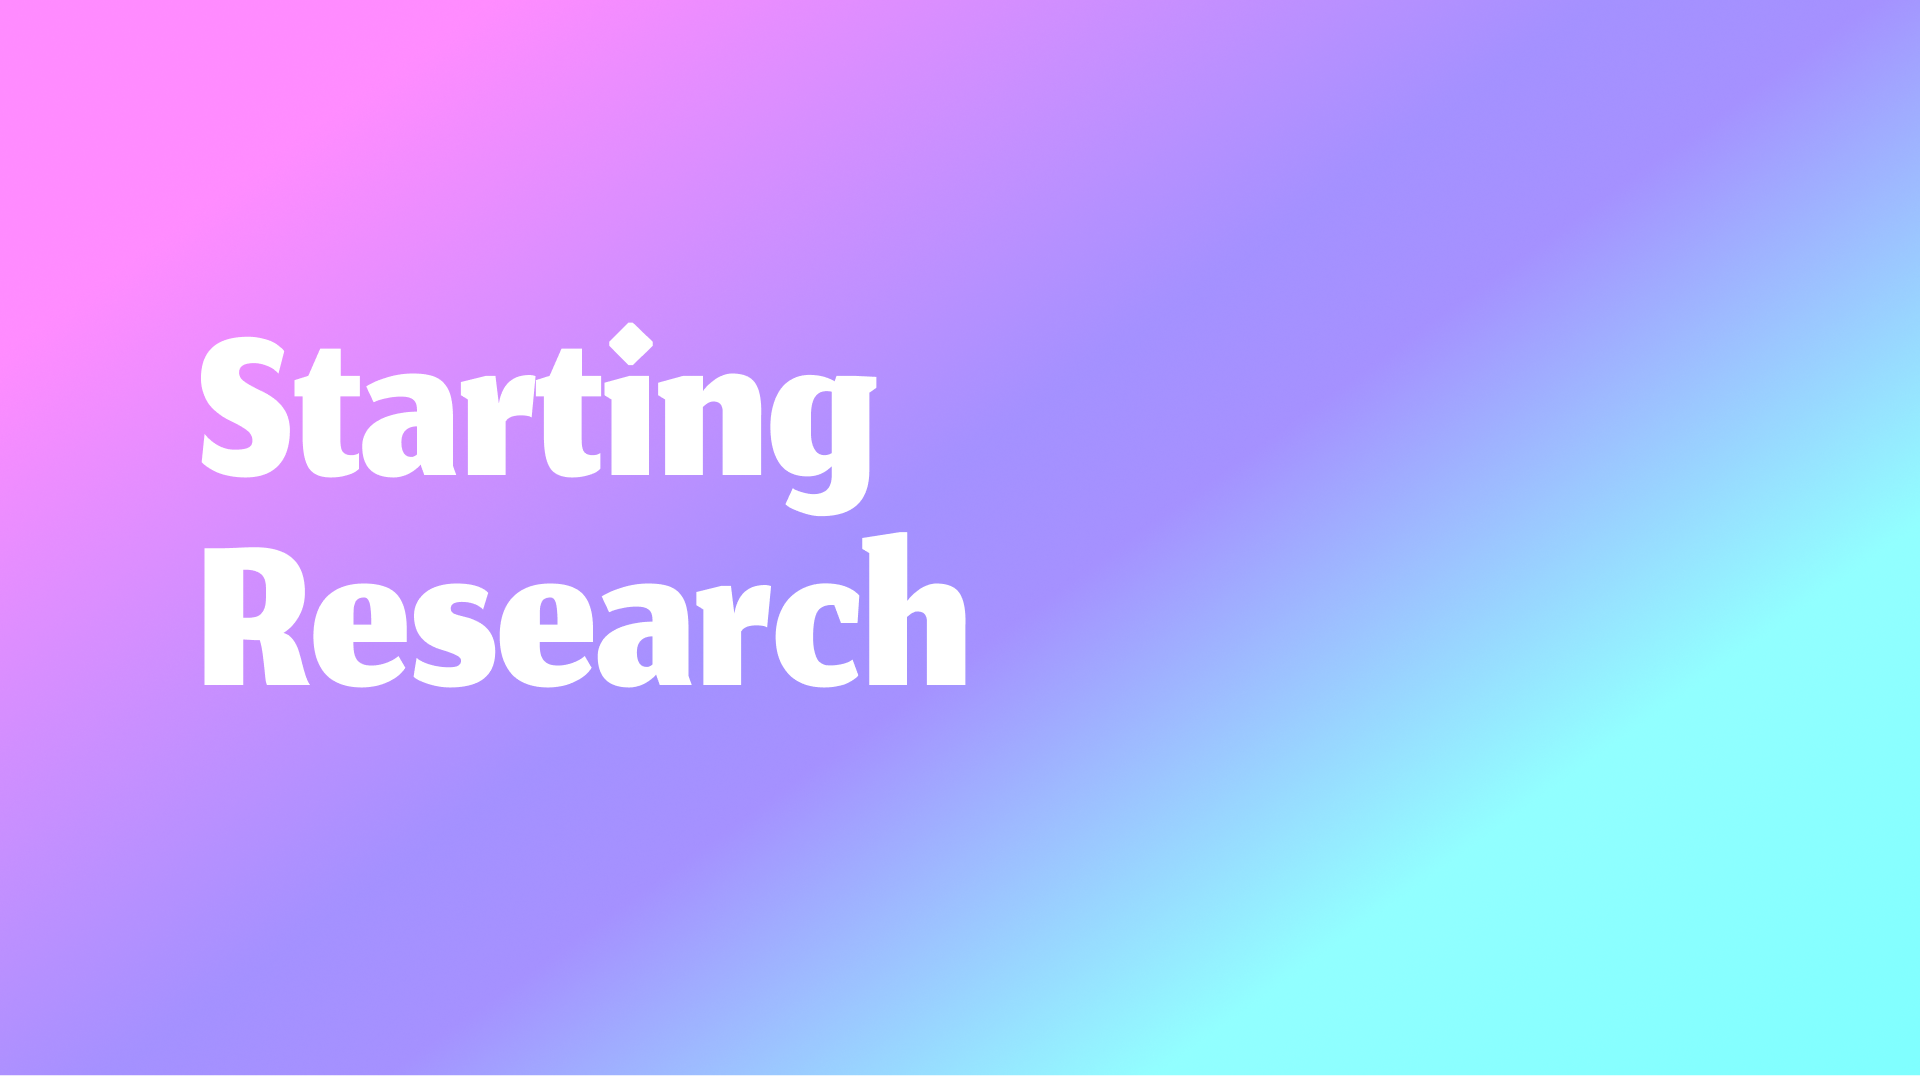 Starting Research